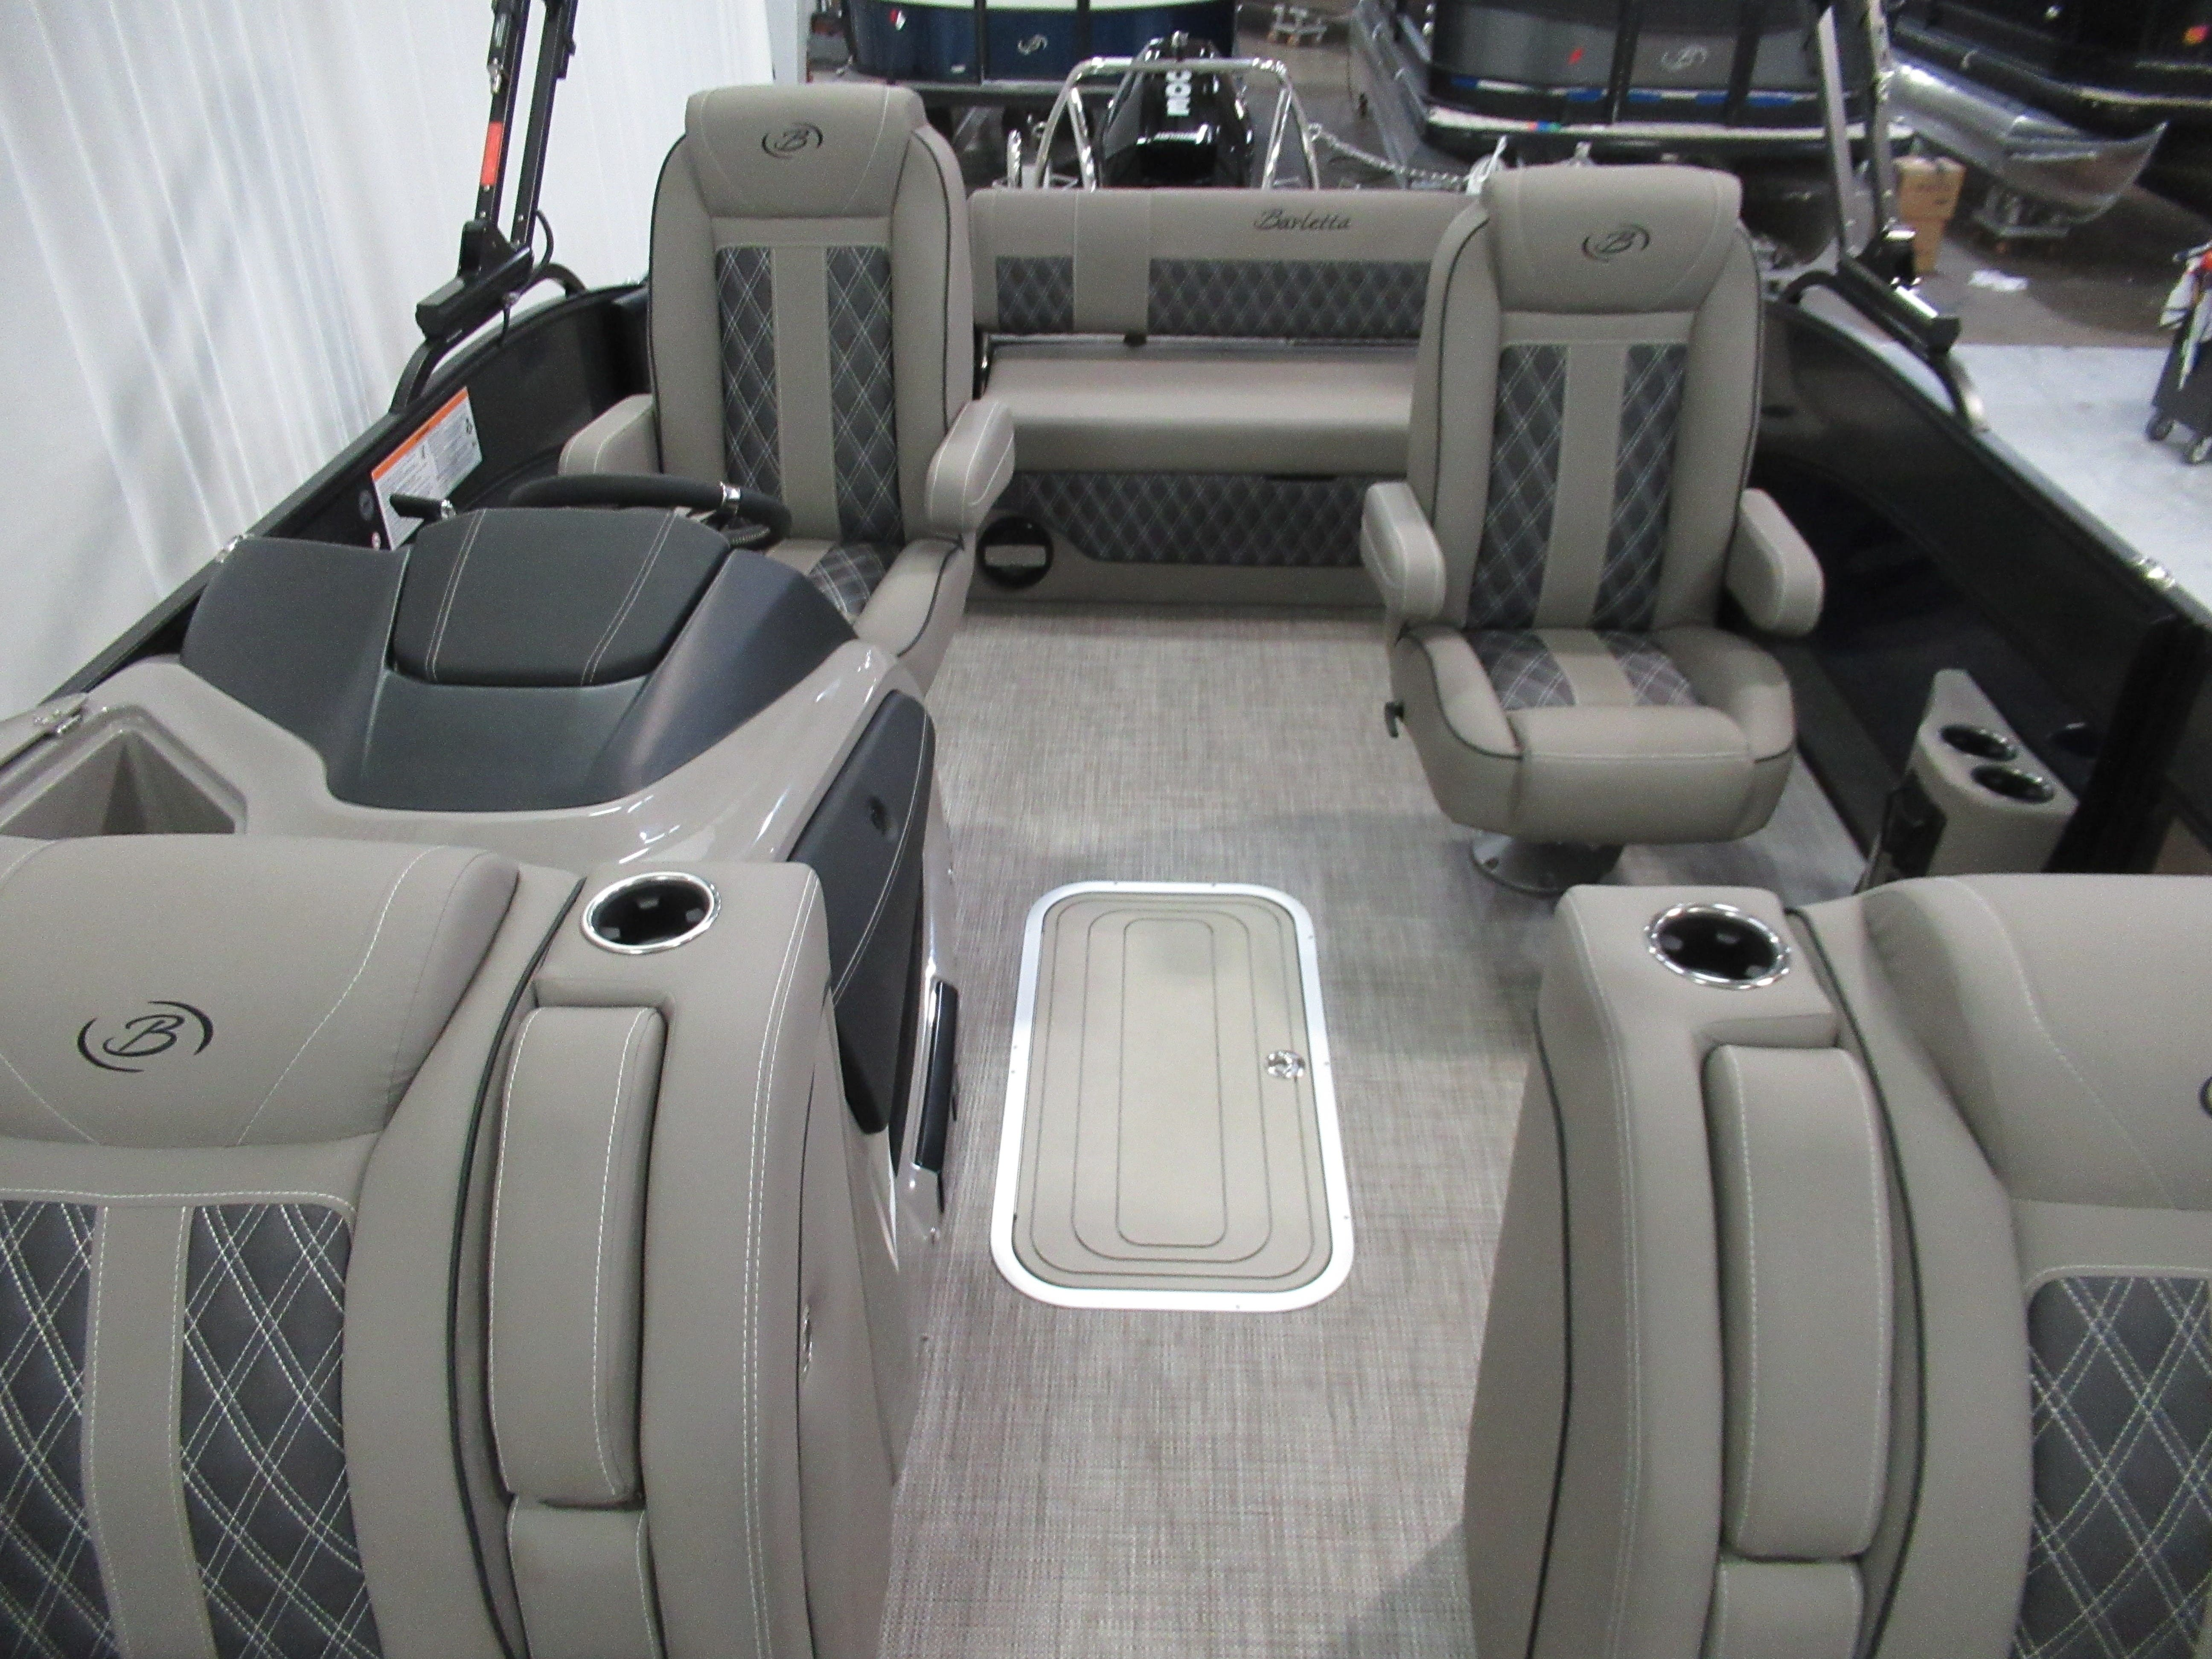 2021 Barletta boat for sale, model of the boat is L25uc & Image # 5 of 11